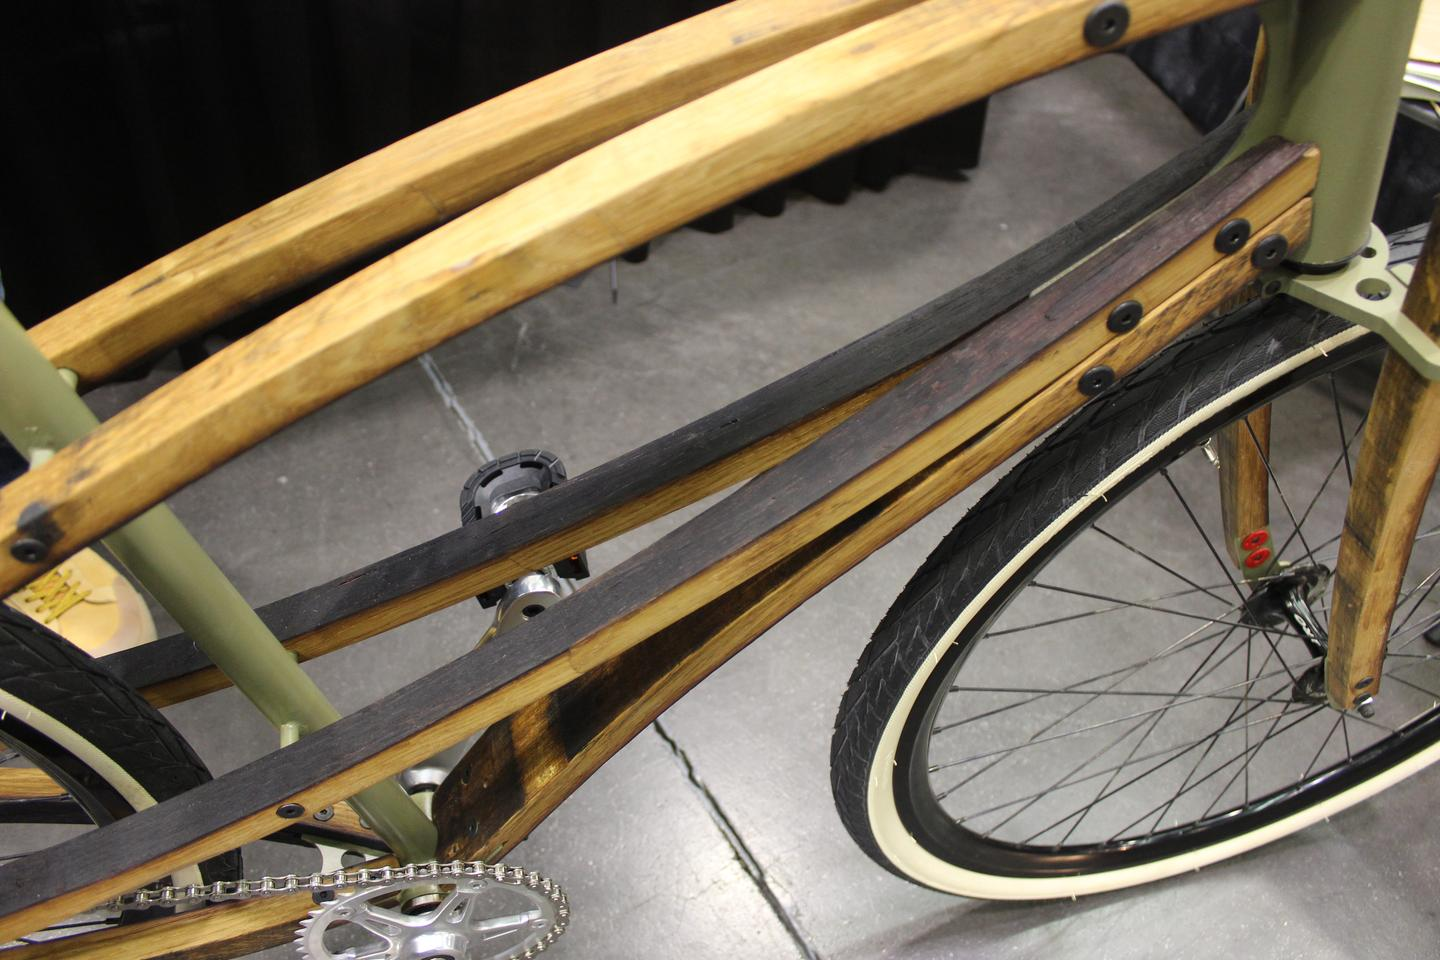 The Cooper Bicycle has some pretty nice curves, along with an attractive patina